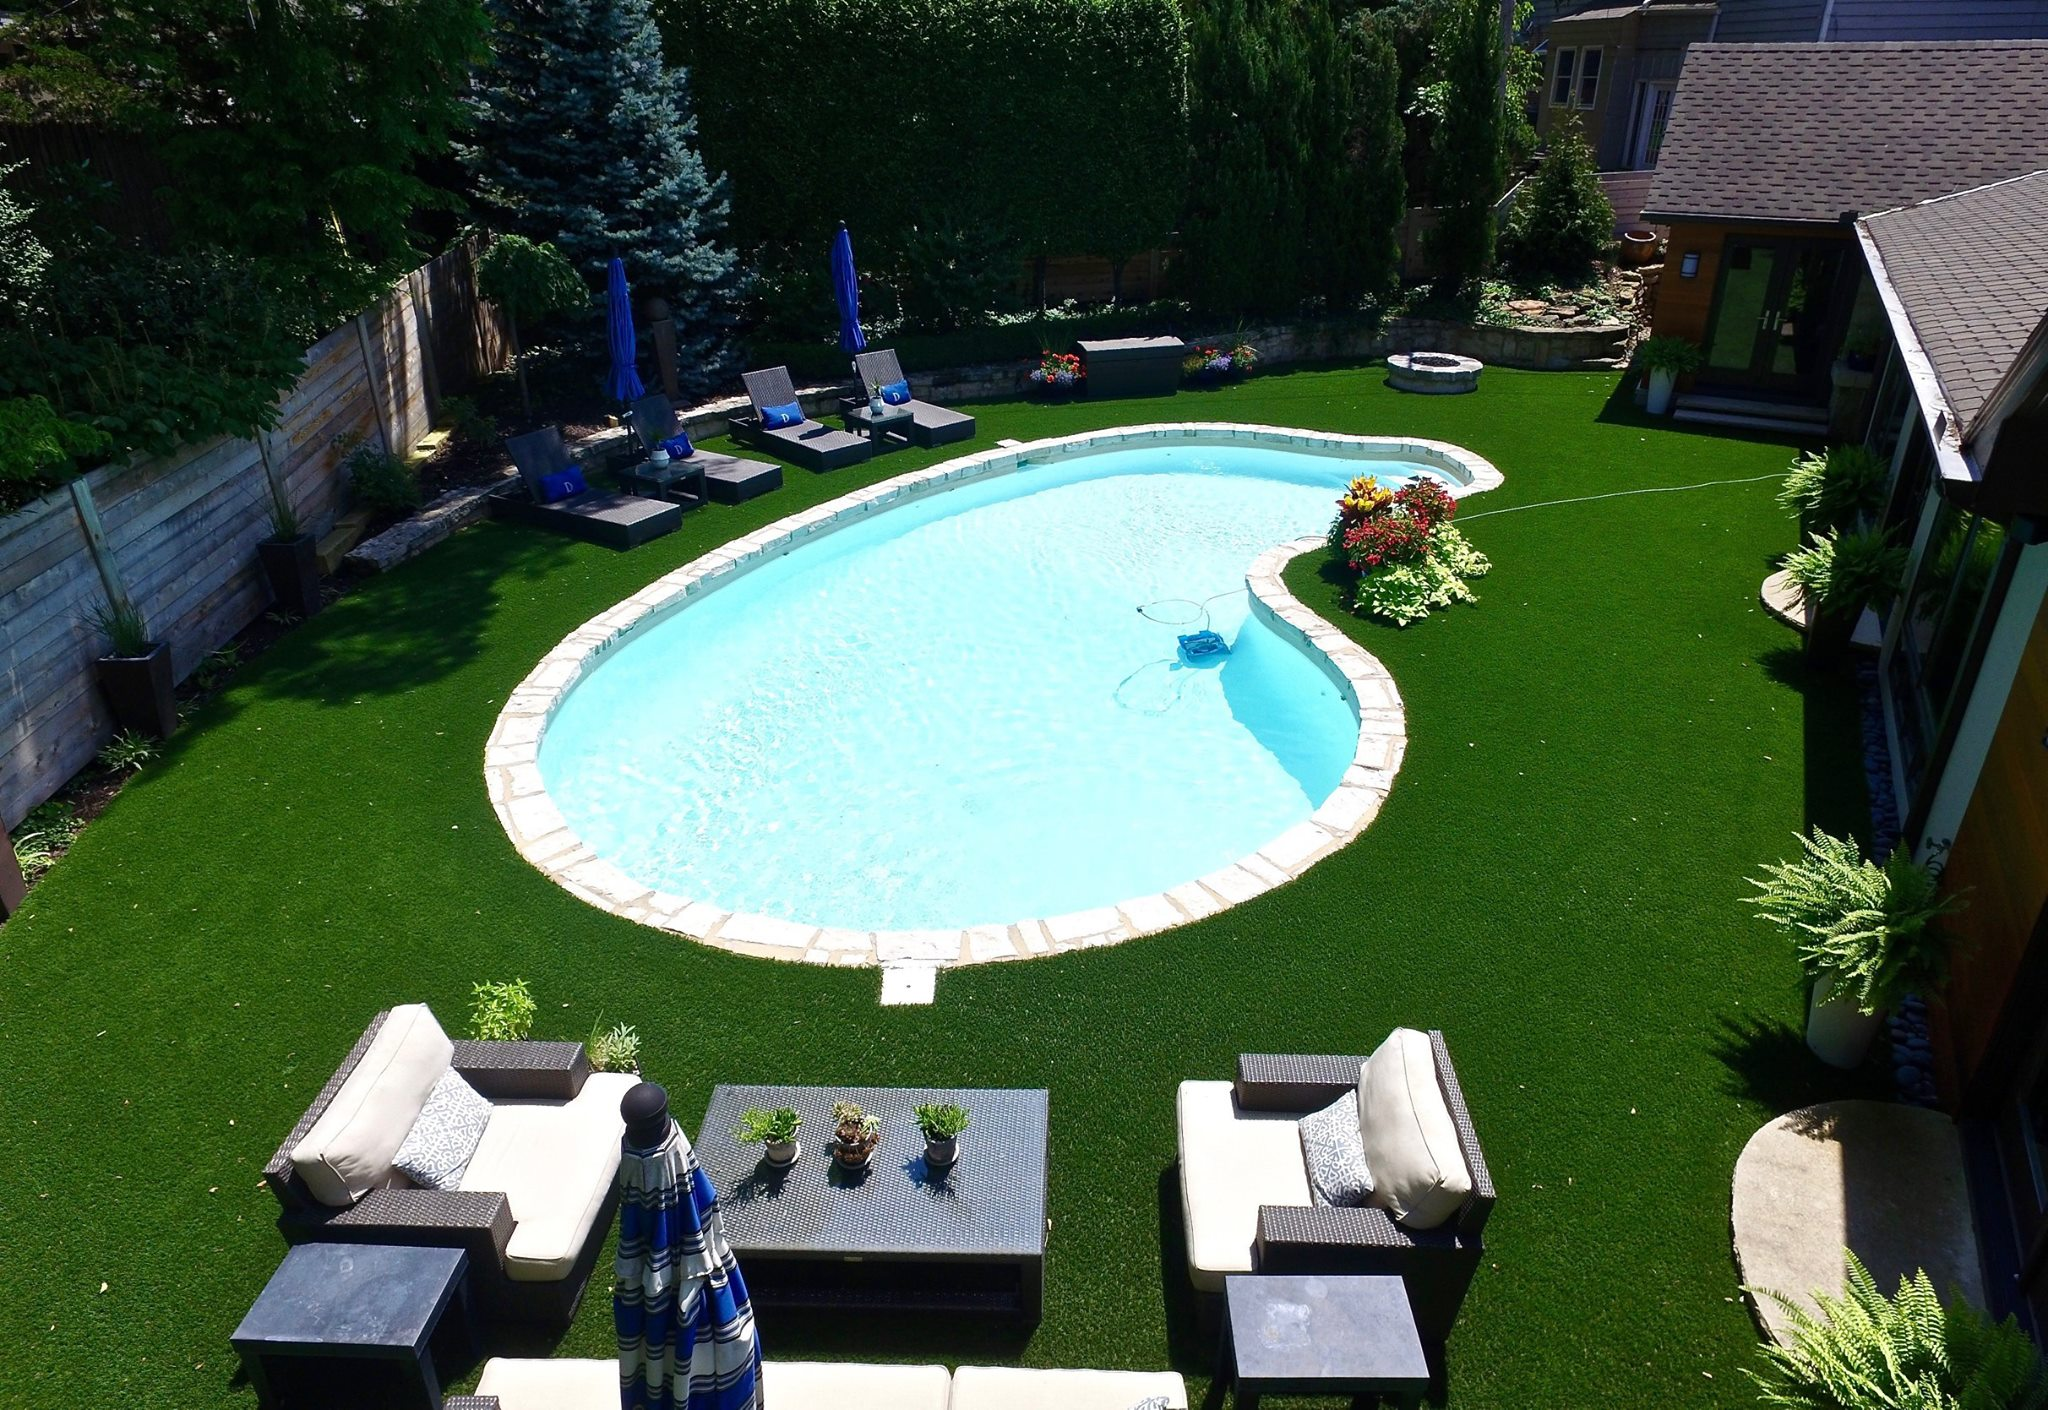 Kansas City backyard with artificial turf and a pool